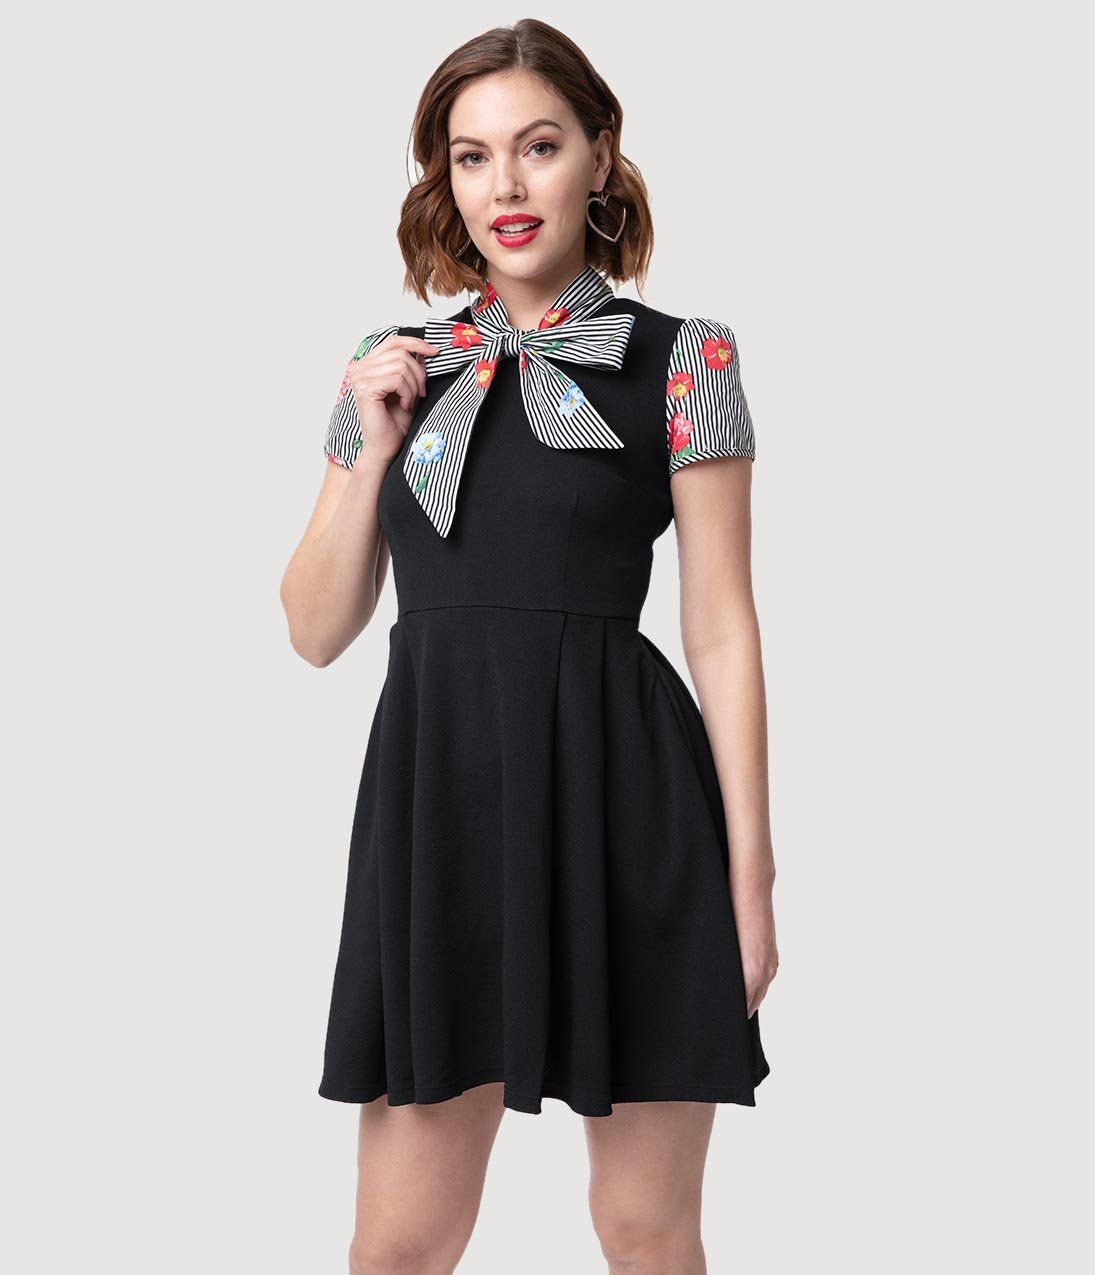 ff5527d60 Smak Parlour 1960s Style Black Stripe & Floral Empower Hour Fit & Flar –  Unique Vintage